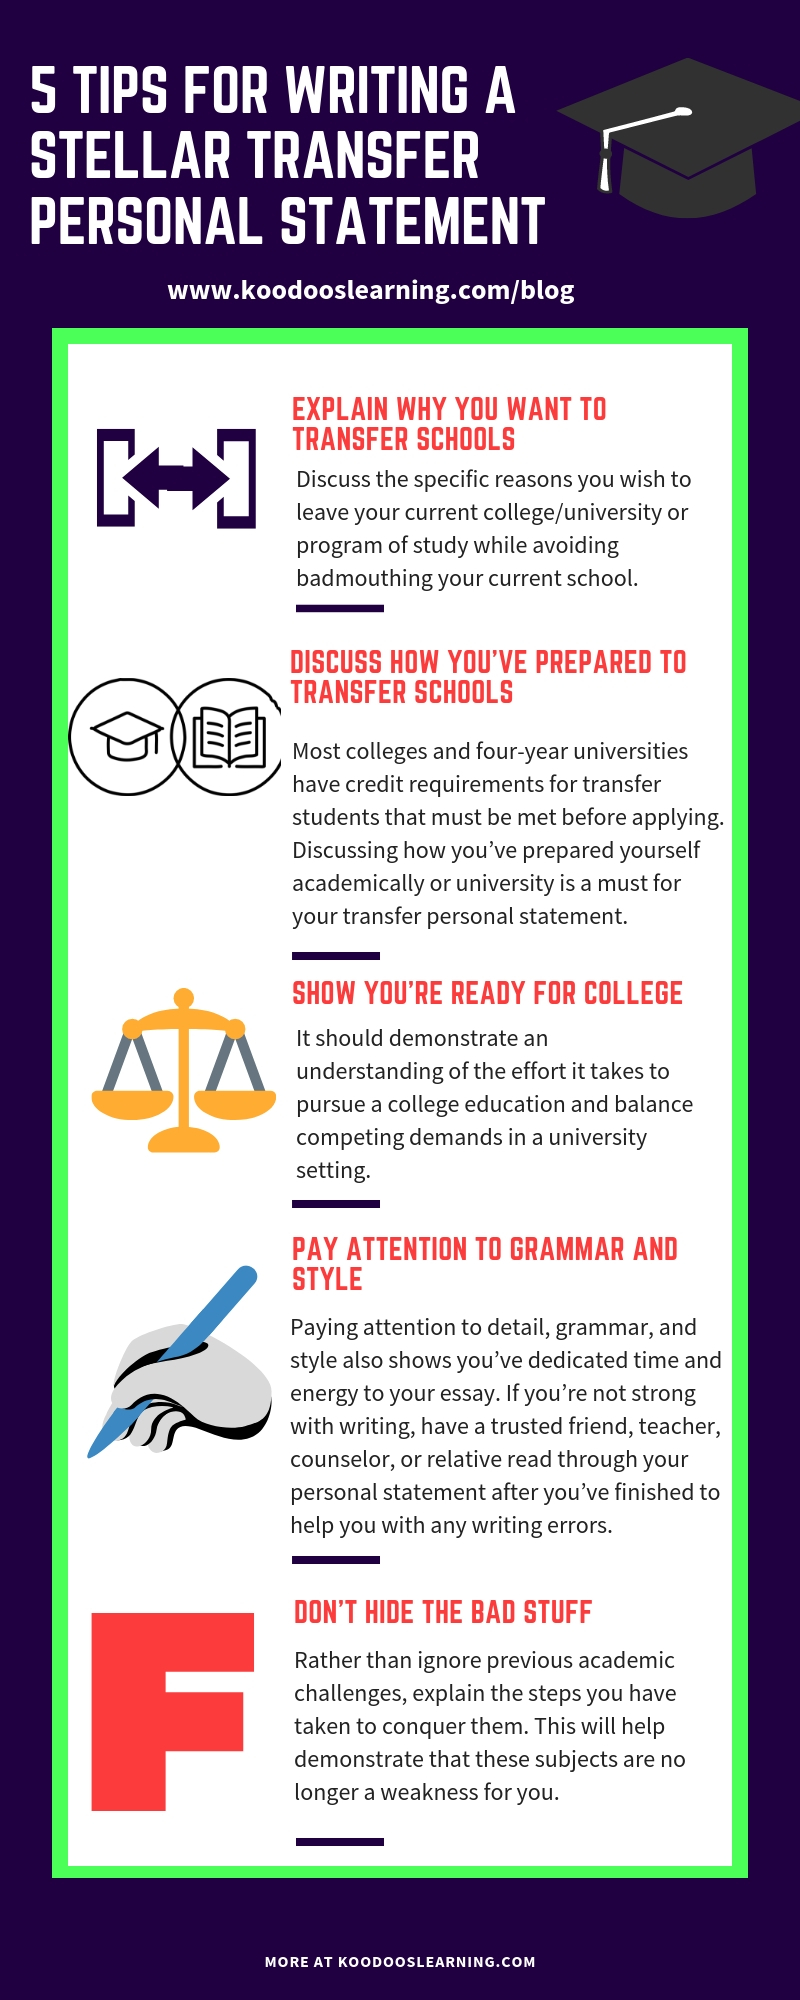 Infographic created by Meliani Wilder